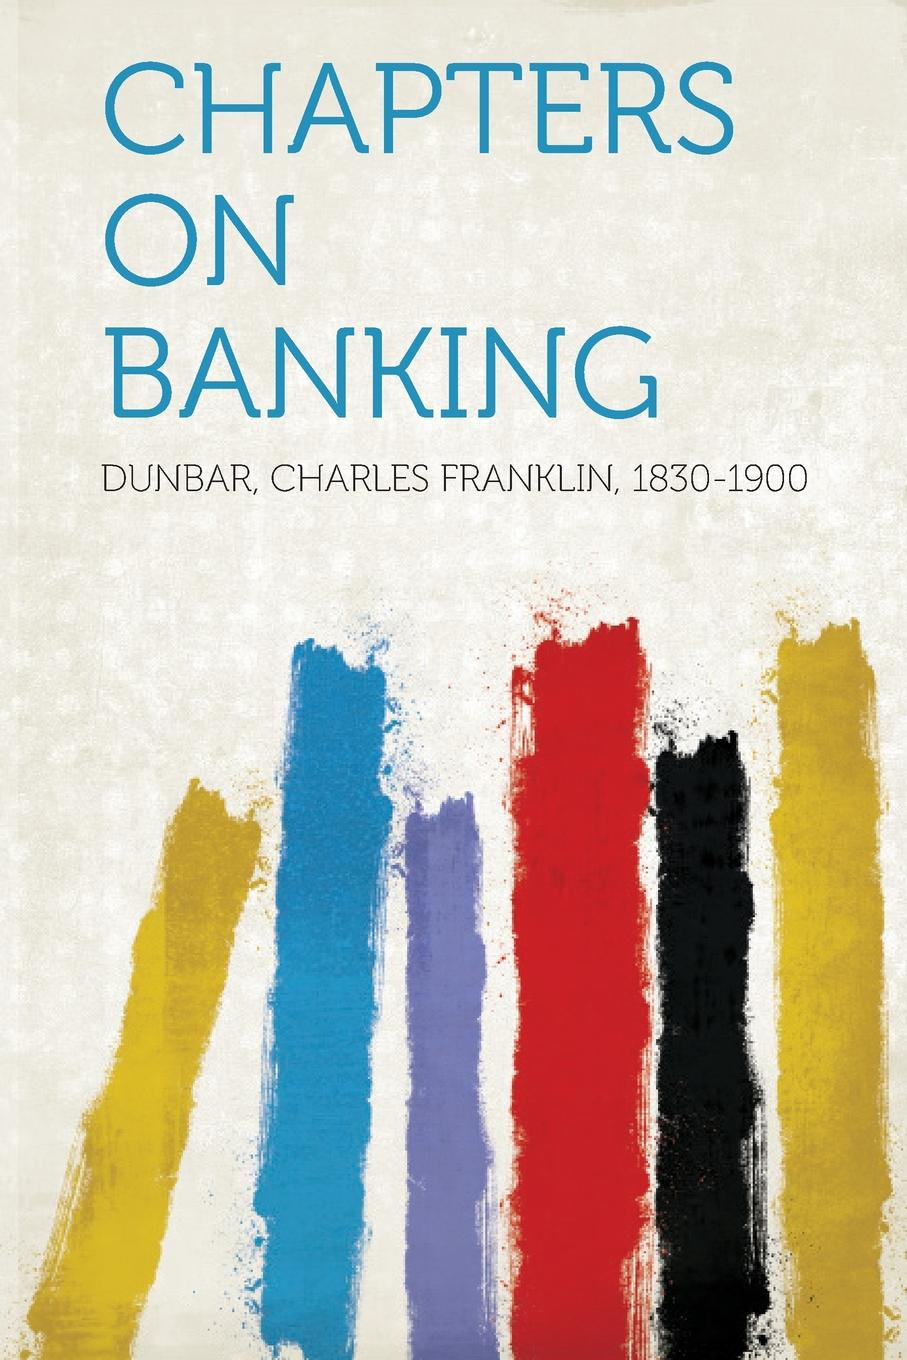 Dunbar Charles Franklin 1830-1900 Chapters on Banking